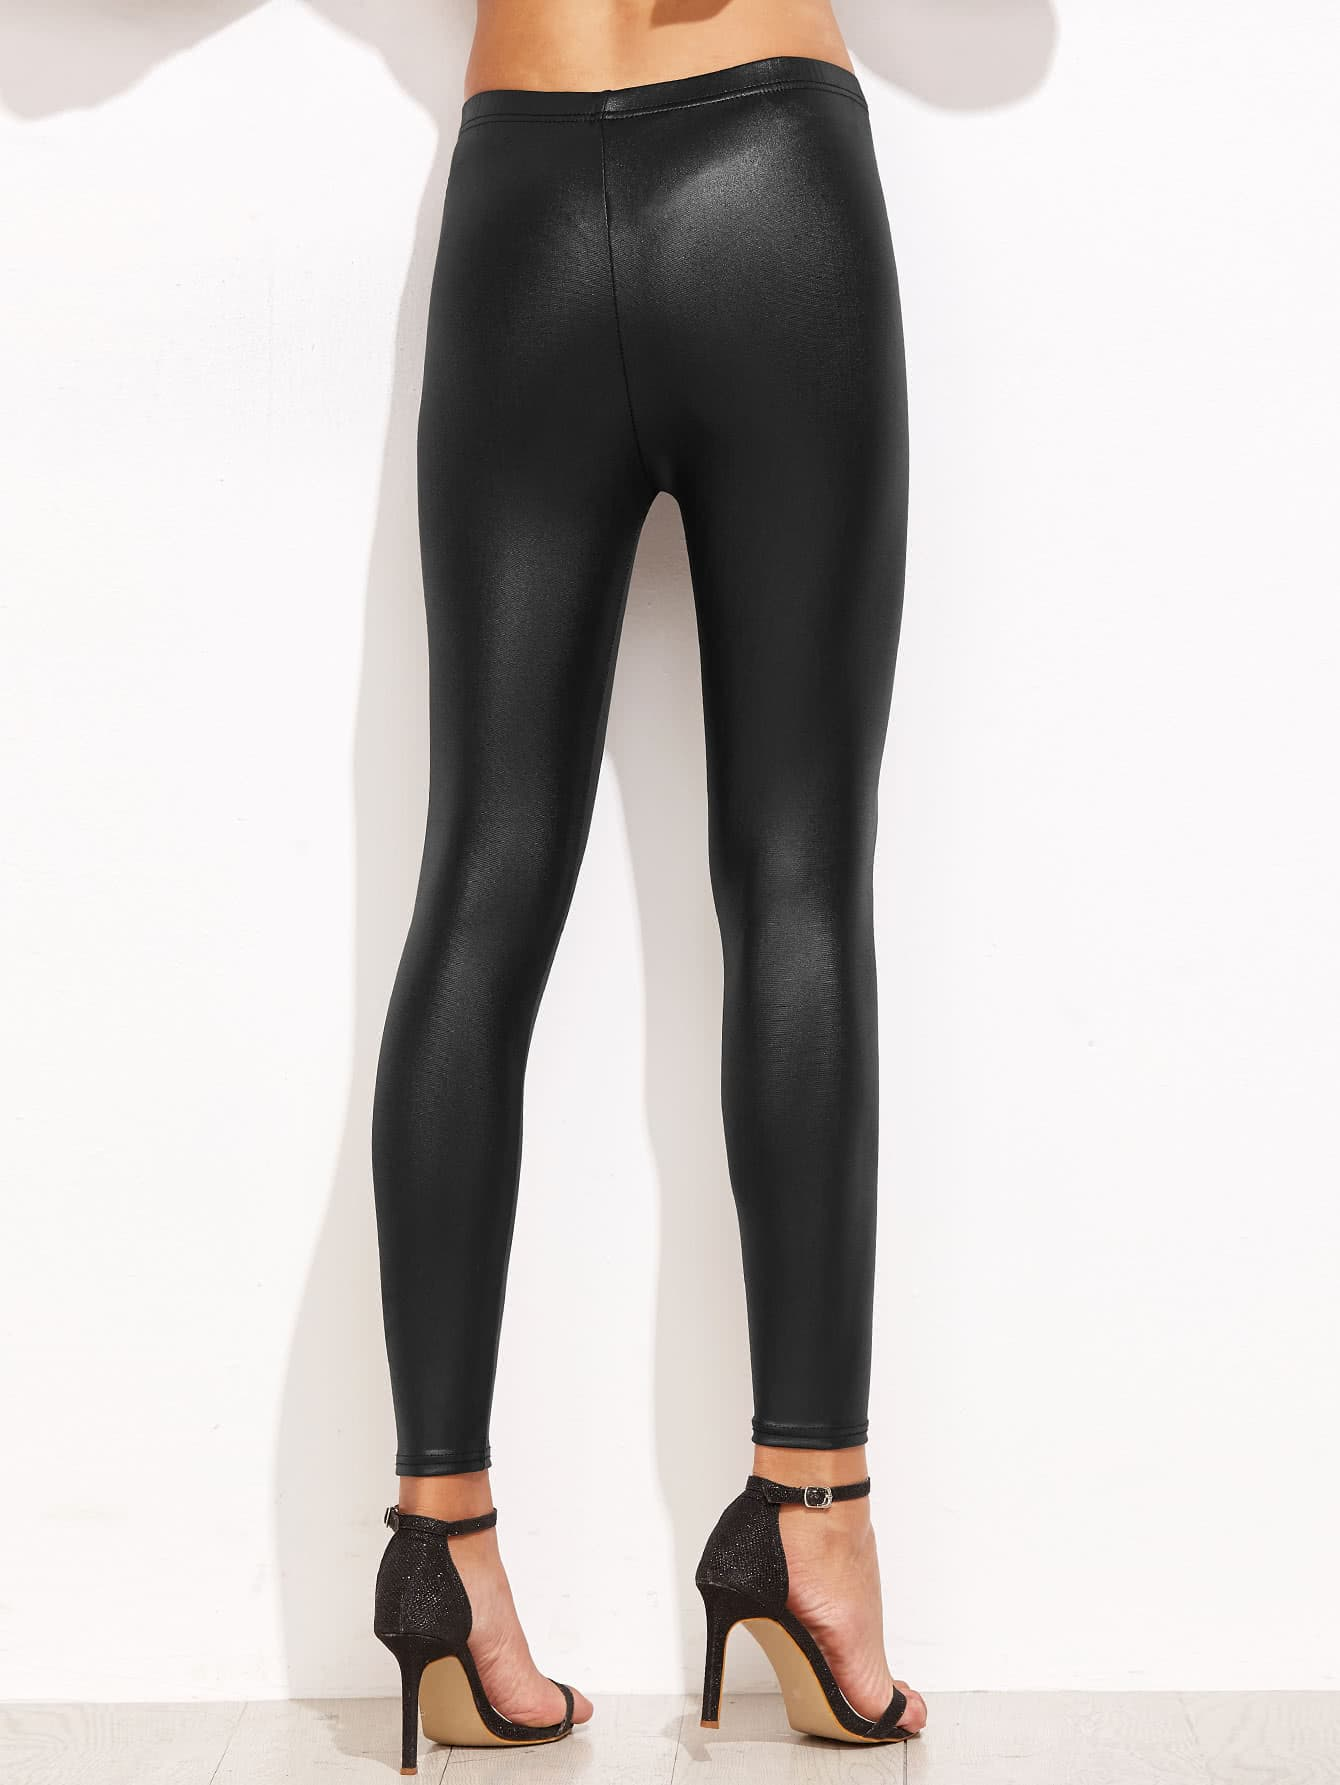 We have 's of styles at great prices so expanding your leg fashion wardrobe is a breeze at Only Leggings. Whether its a pair of black basic leggings, sexy faux leather or a new collection of plus size styles, we always have more than enough leg fashion choices for you to pick from.